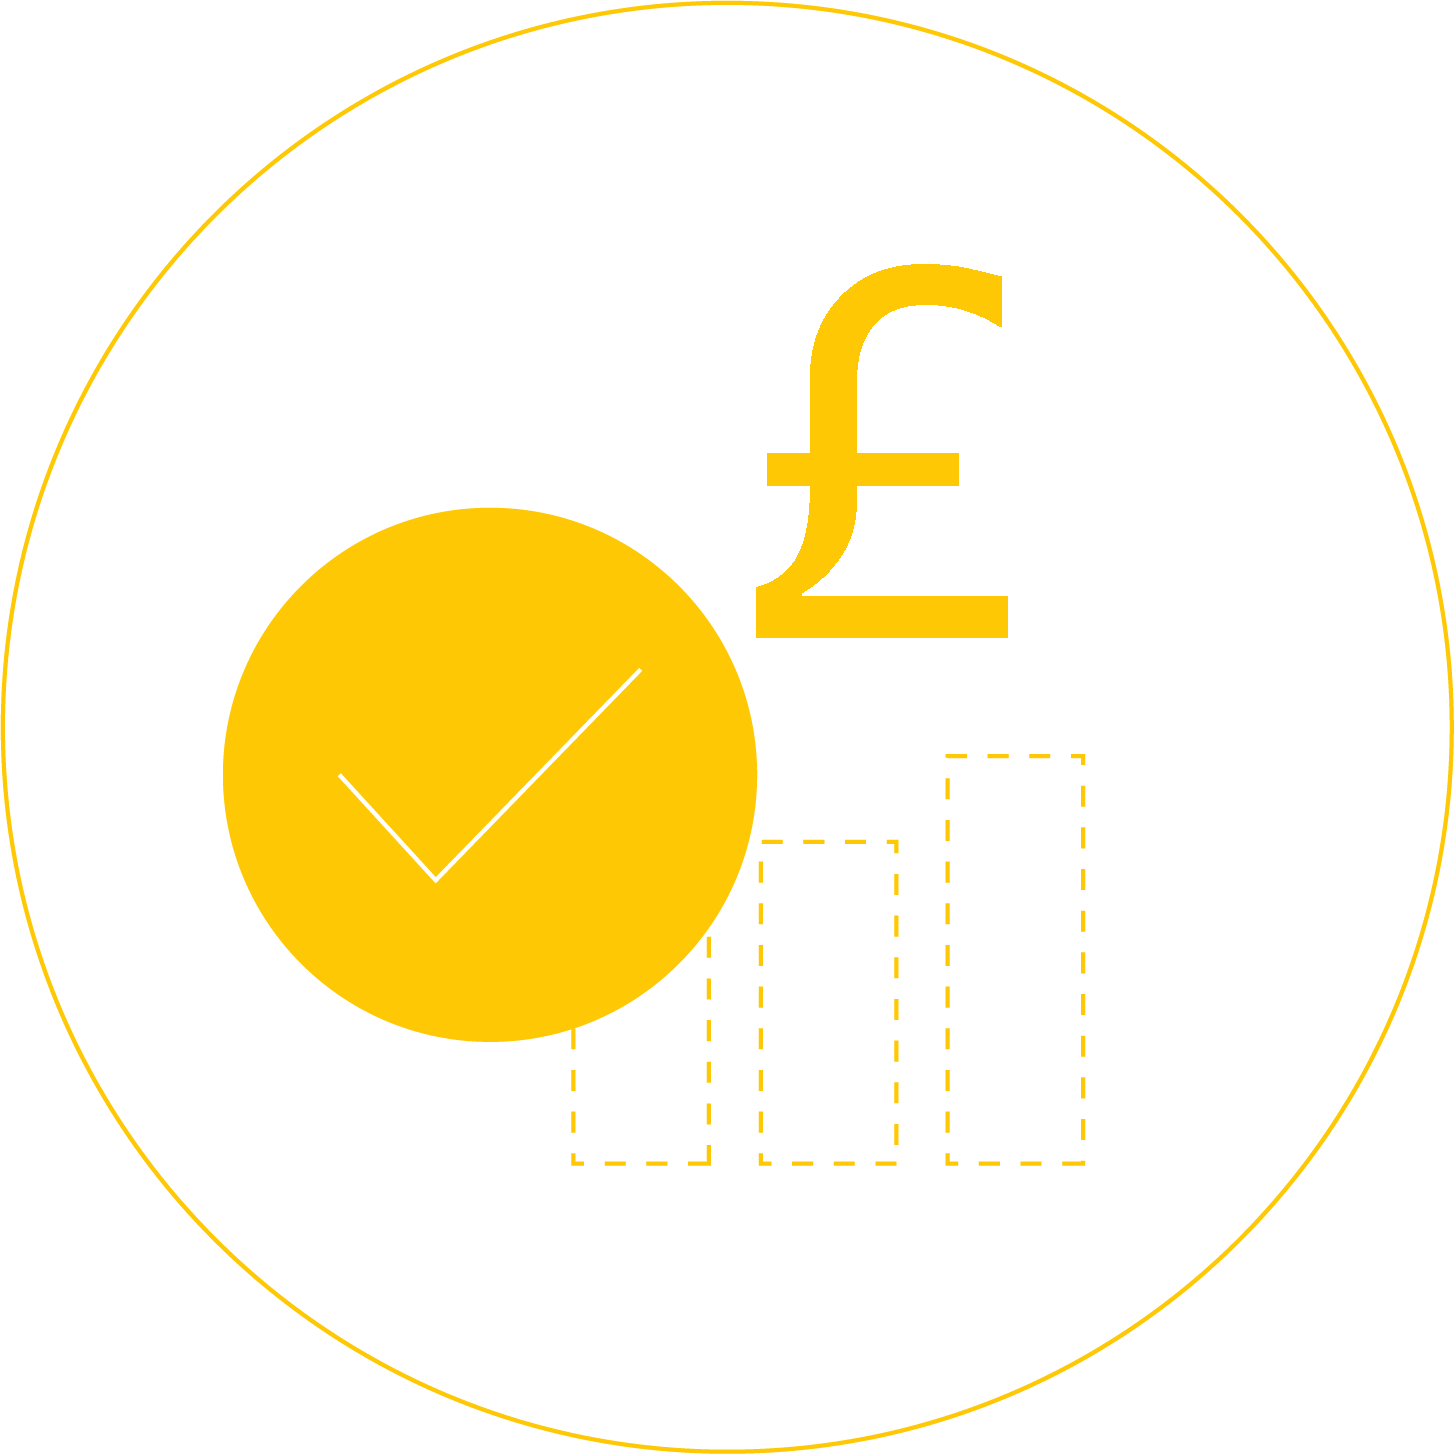 Icon showing a chart and a pound sign